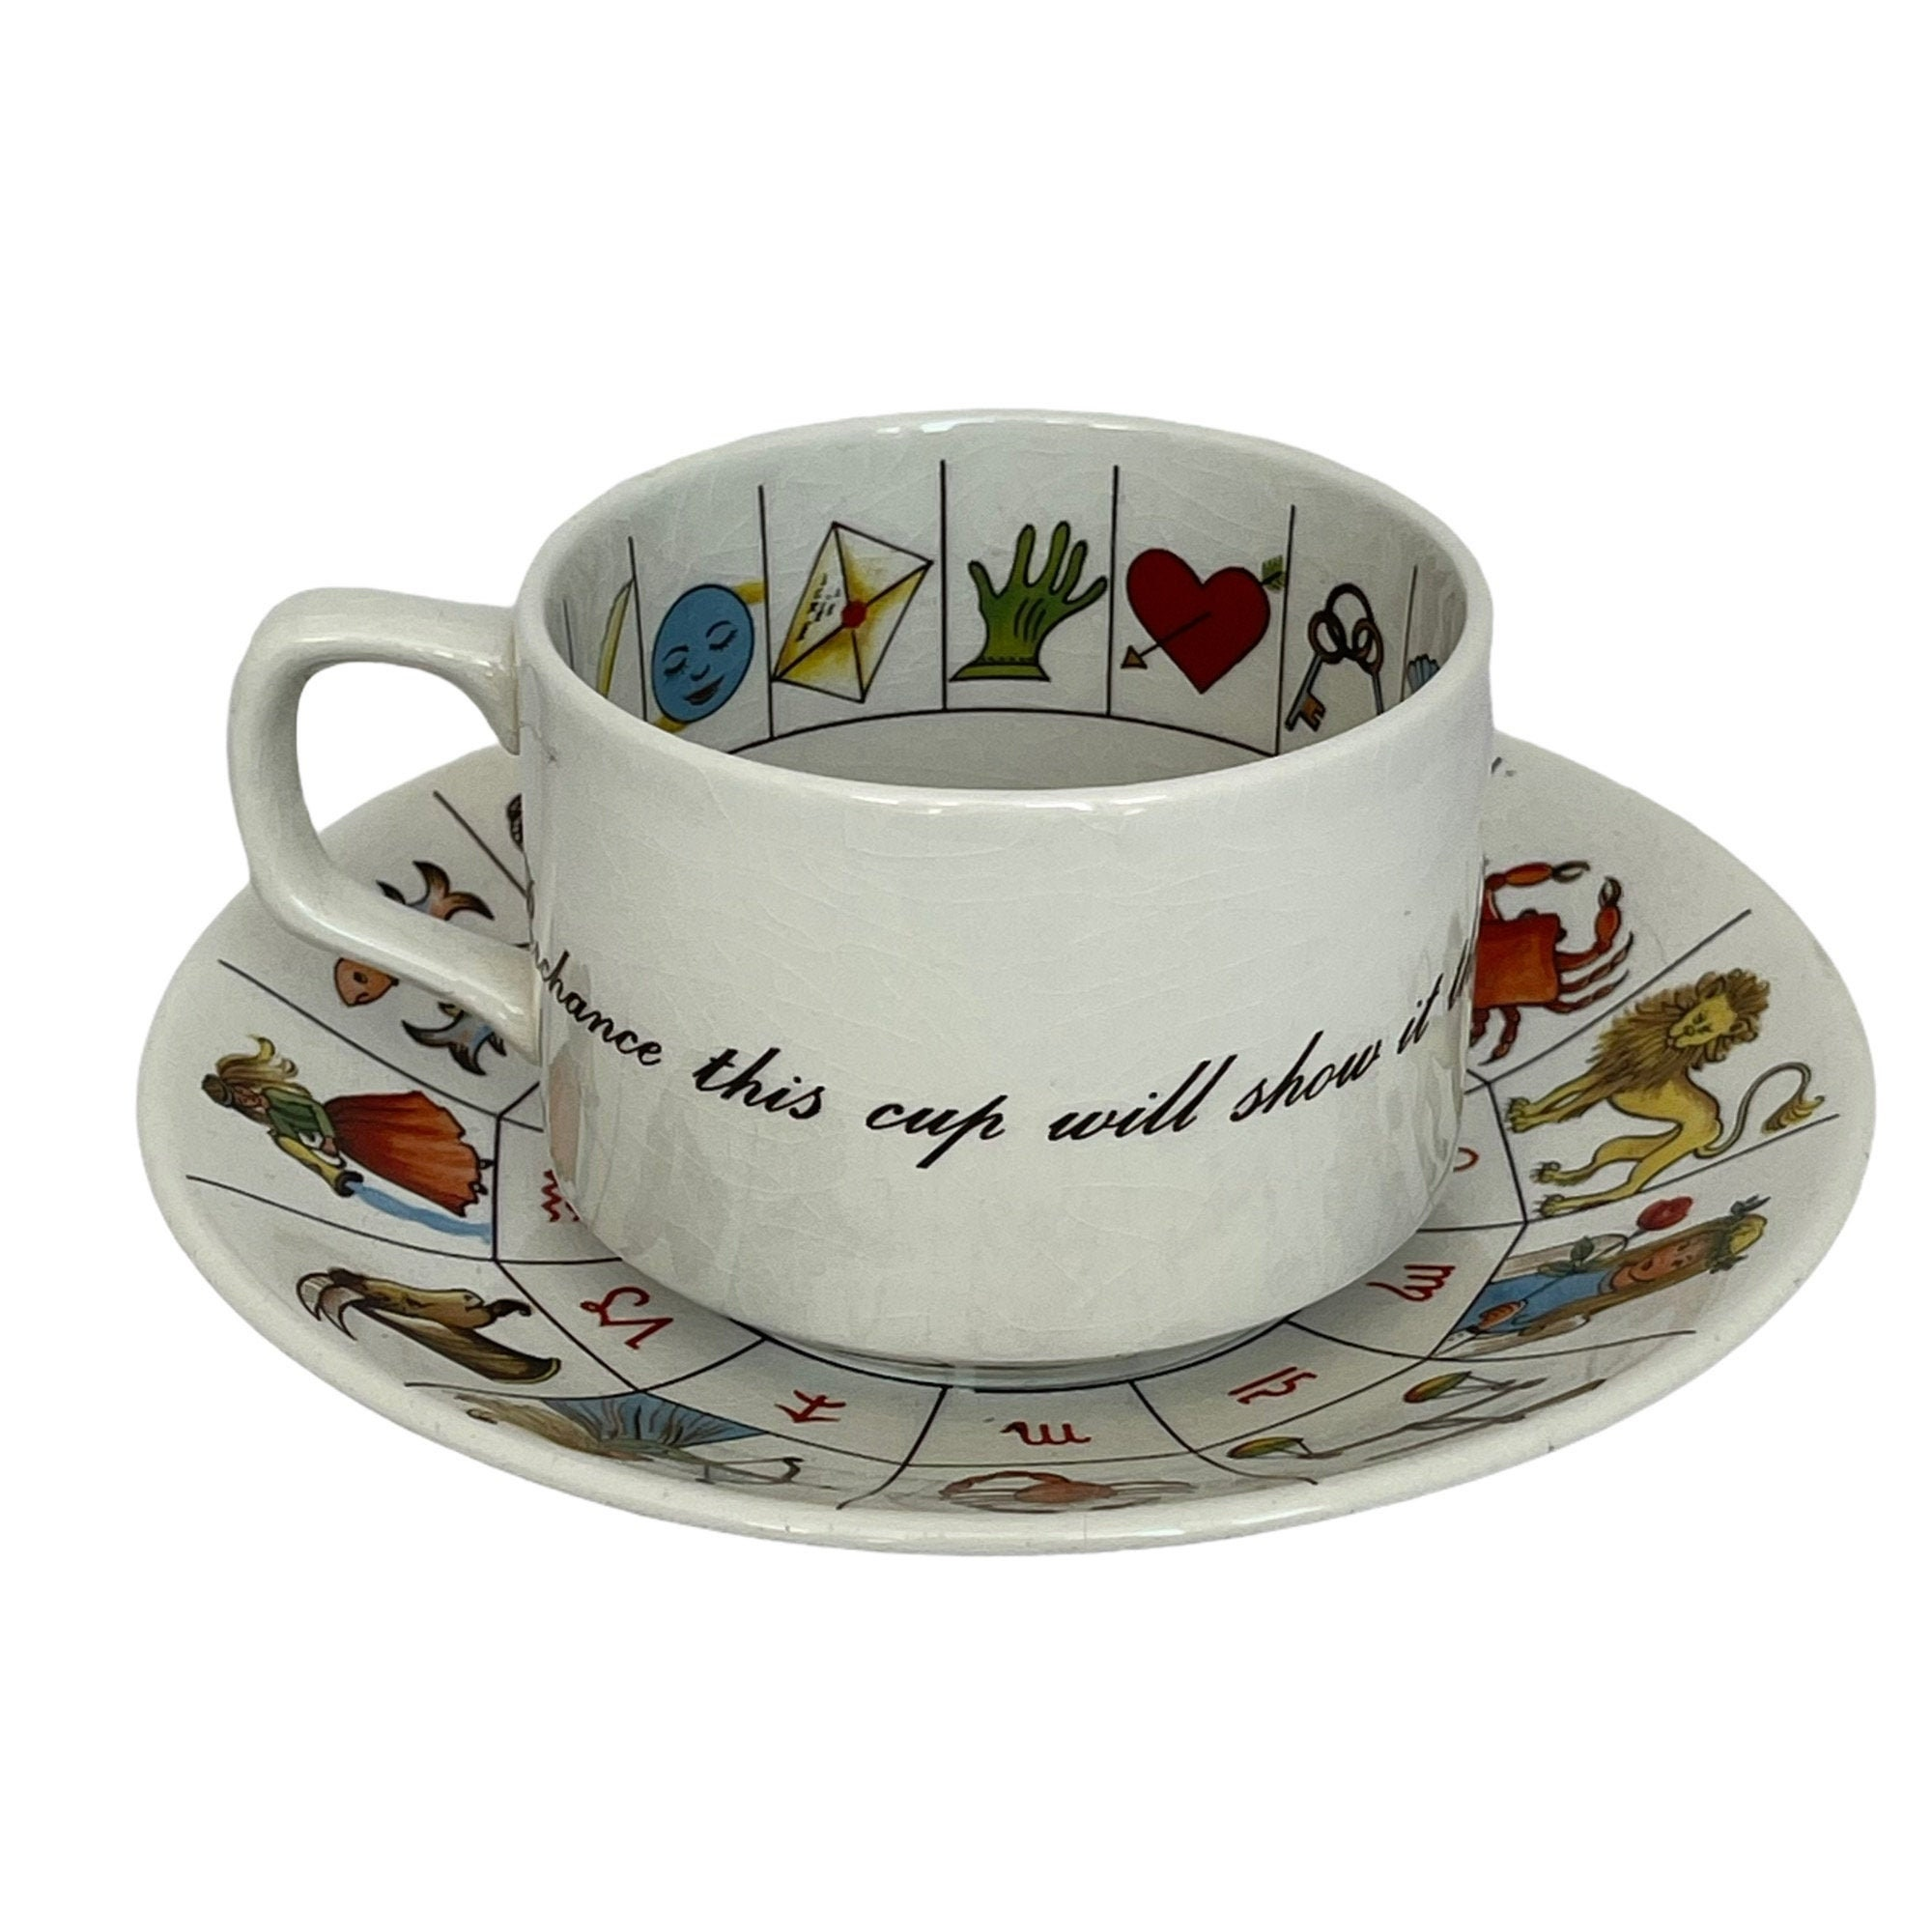 Vintage Jon Anton Fortune Telling Cup Saucer Ironstone Etsy Wallpaper tea cup book garlands leaves